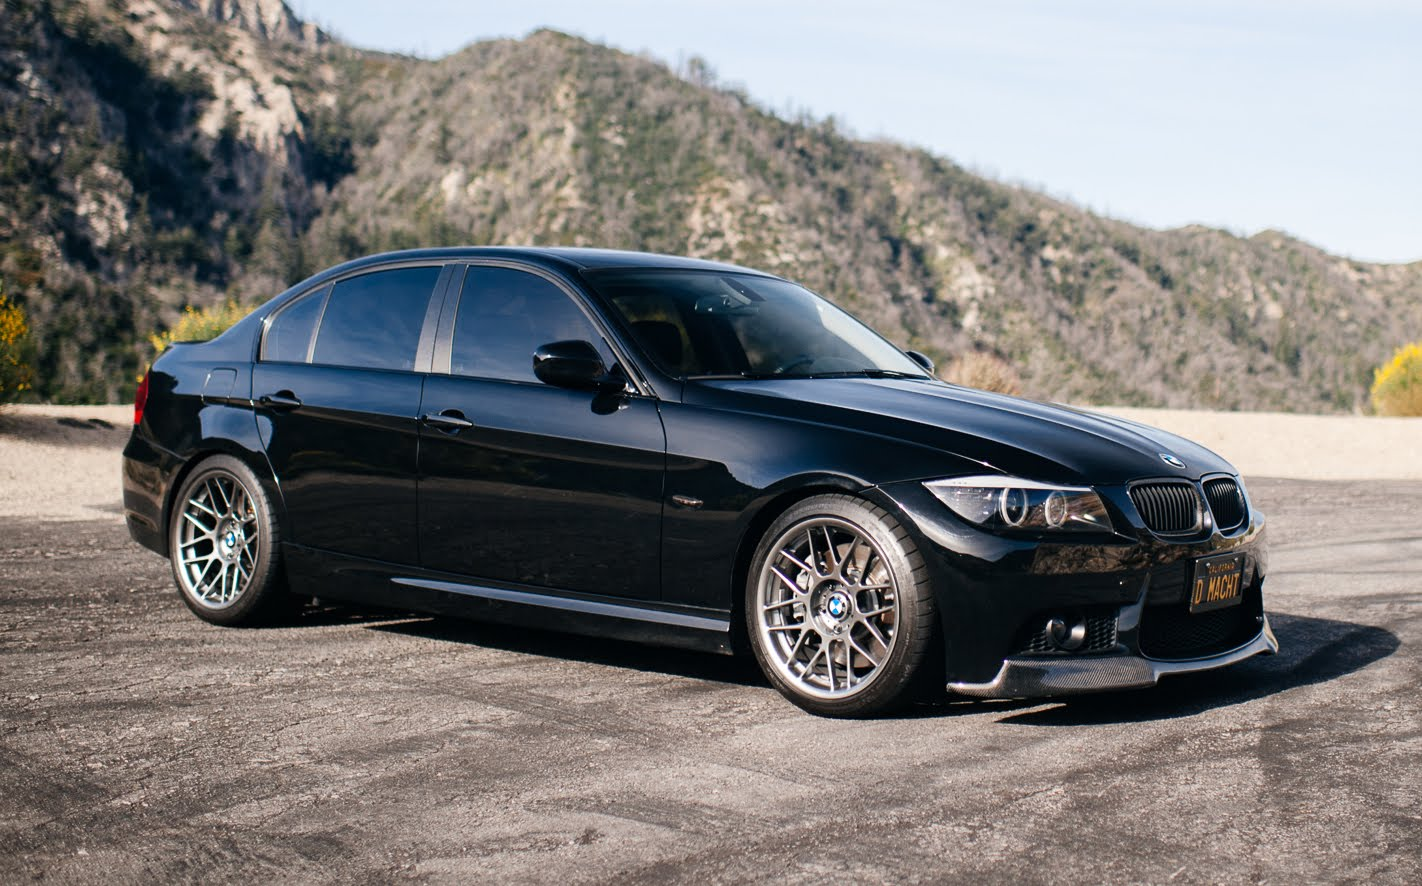 This Modified Bmw 335d Is Much More Than Just A Looker